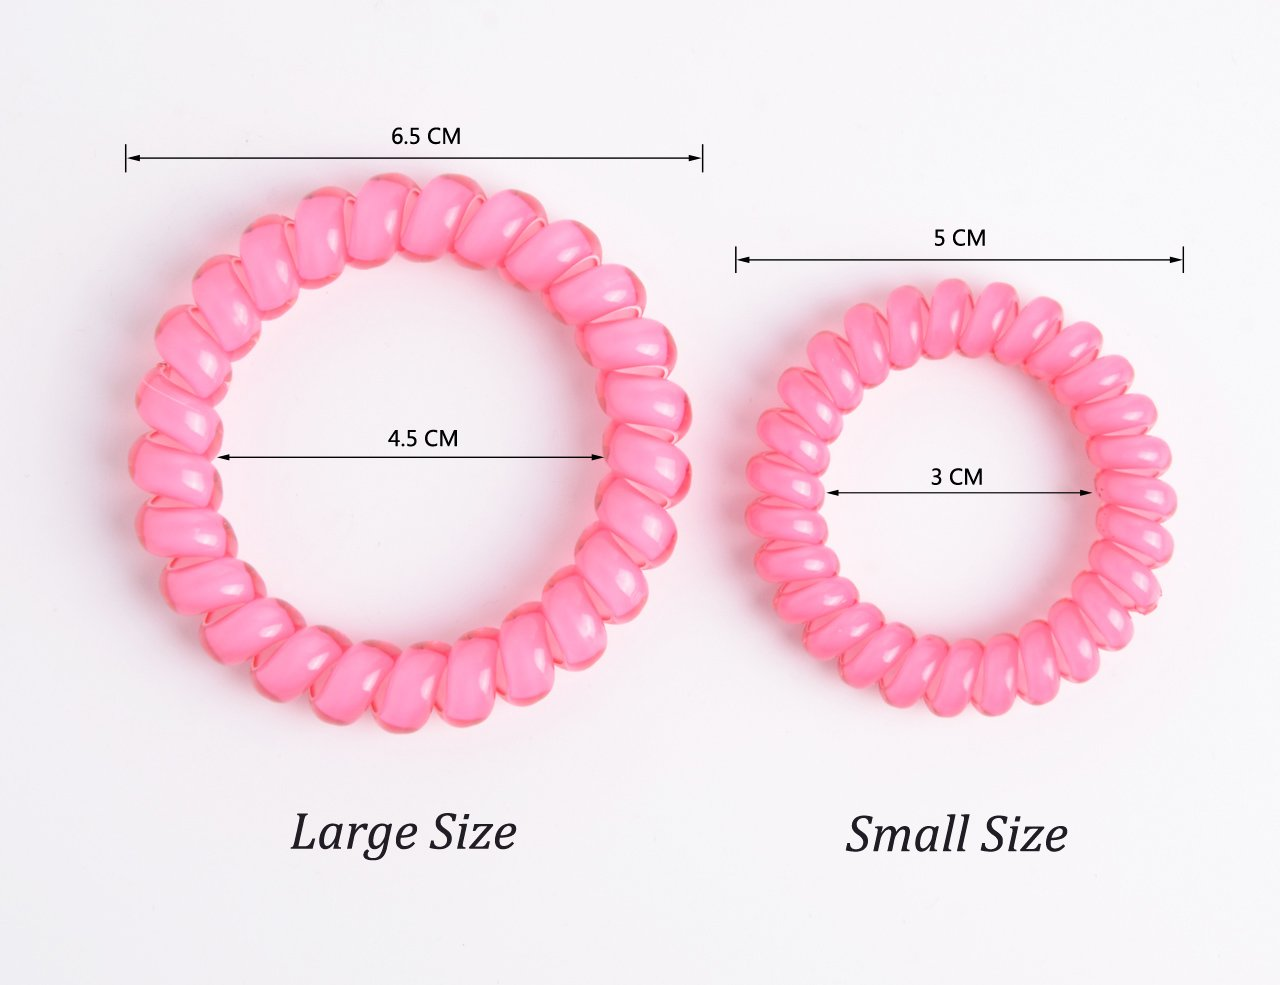 Youxuan 4 Piece Hair Coil Set No-kink Spiral Hair Ring Strong Elasticity